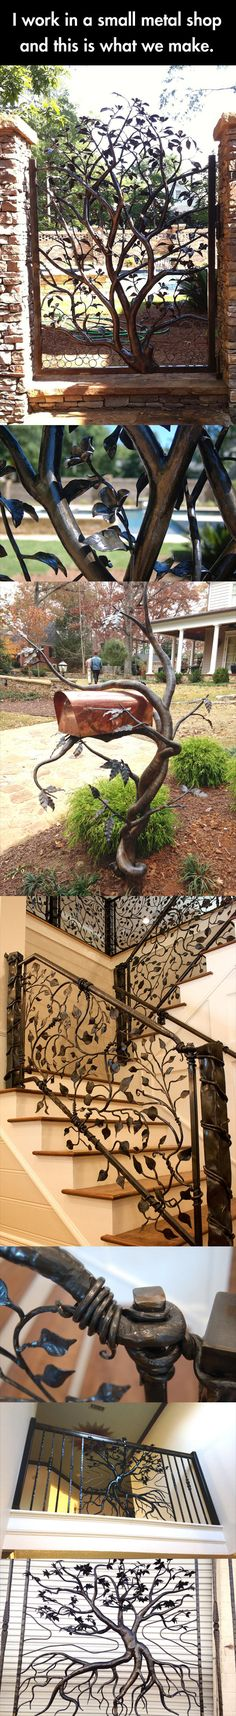 Some incredible metal work…